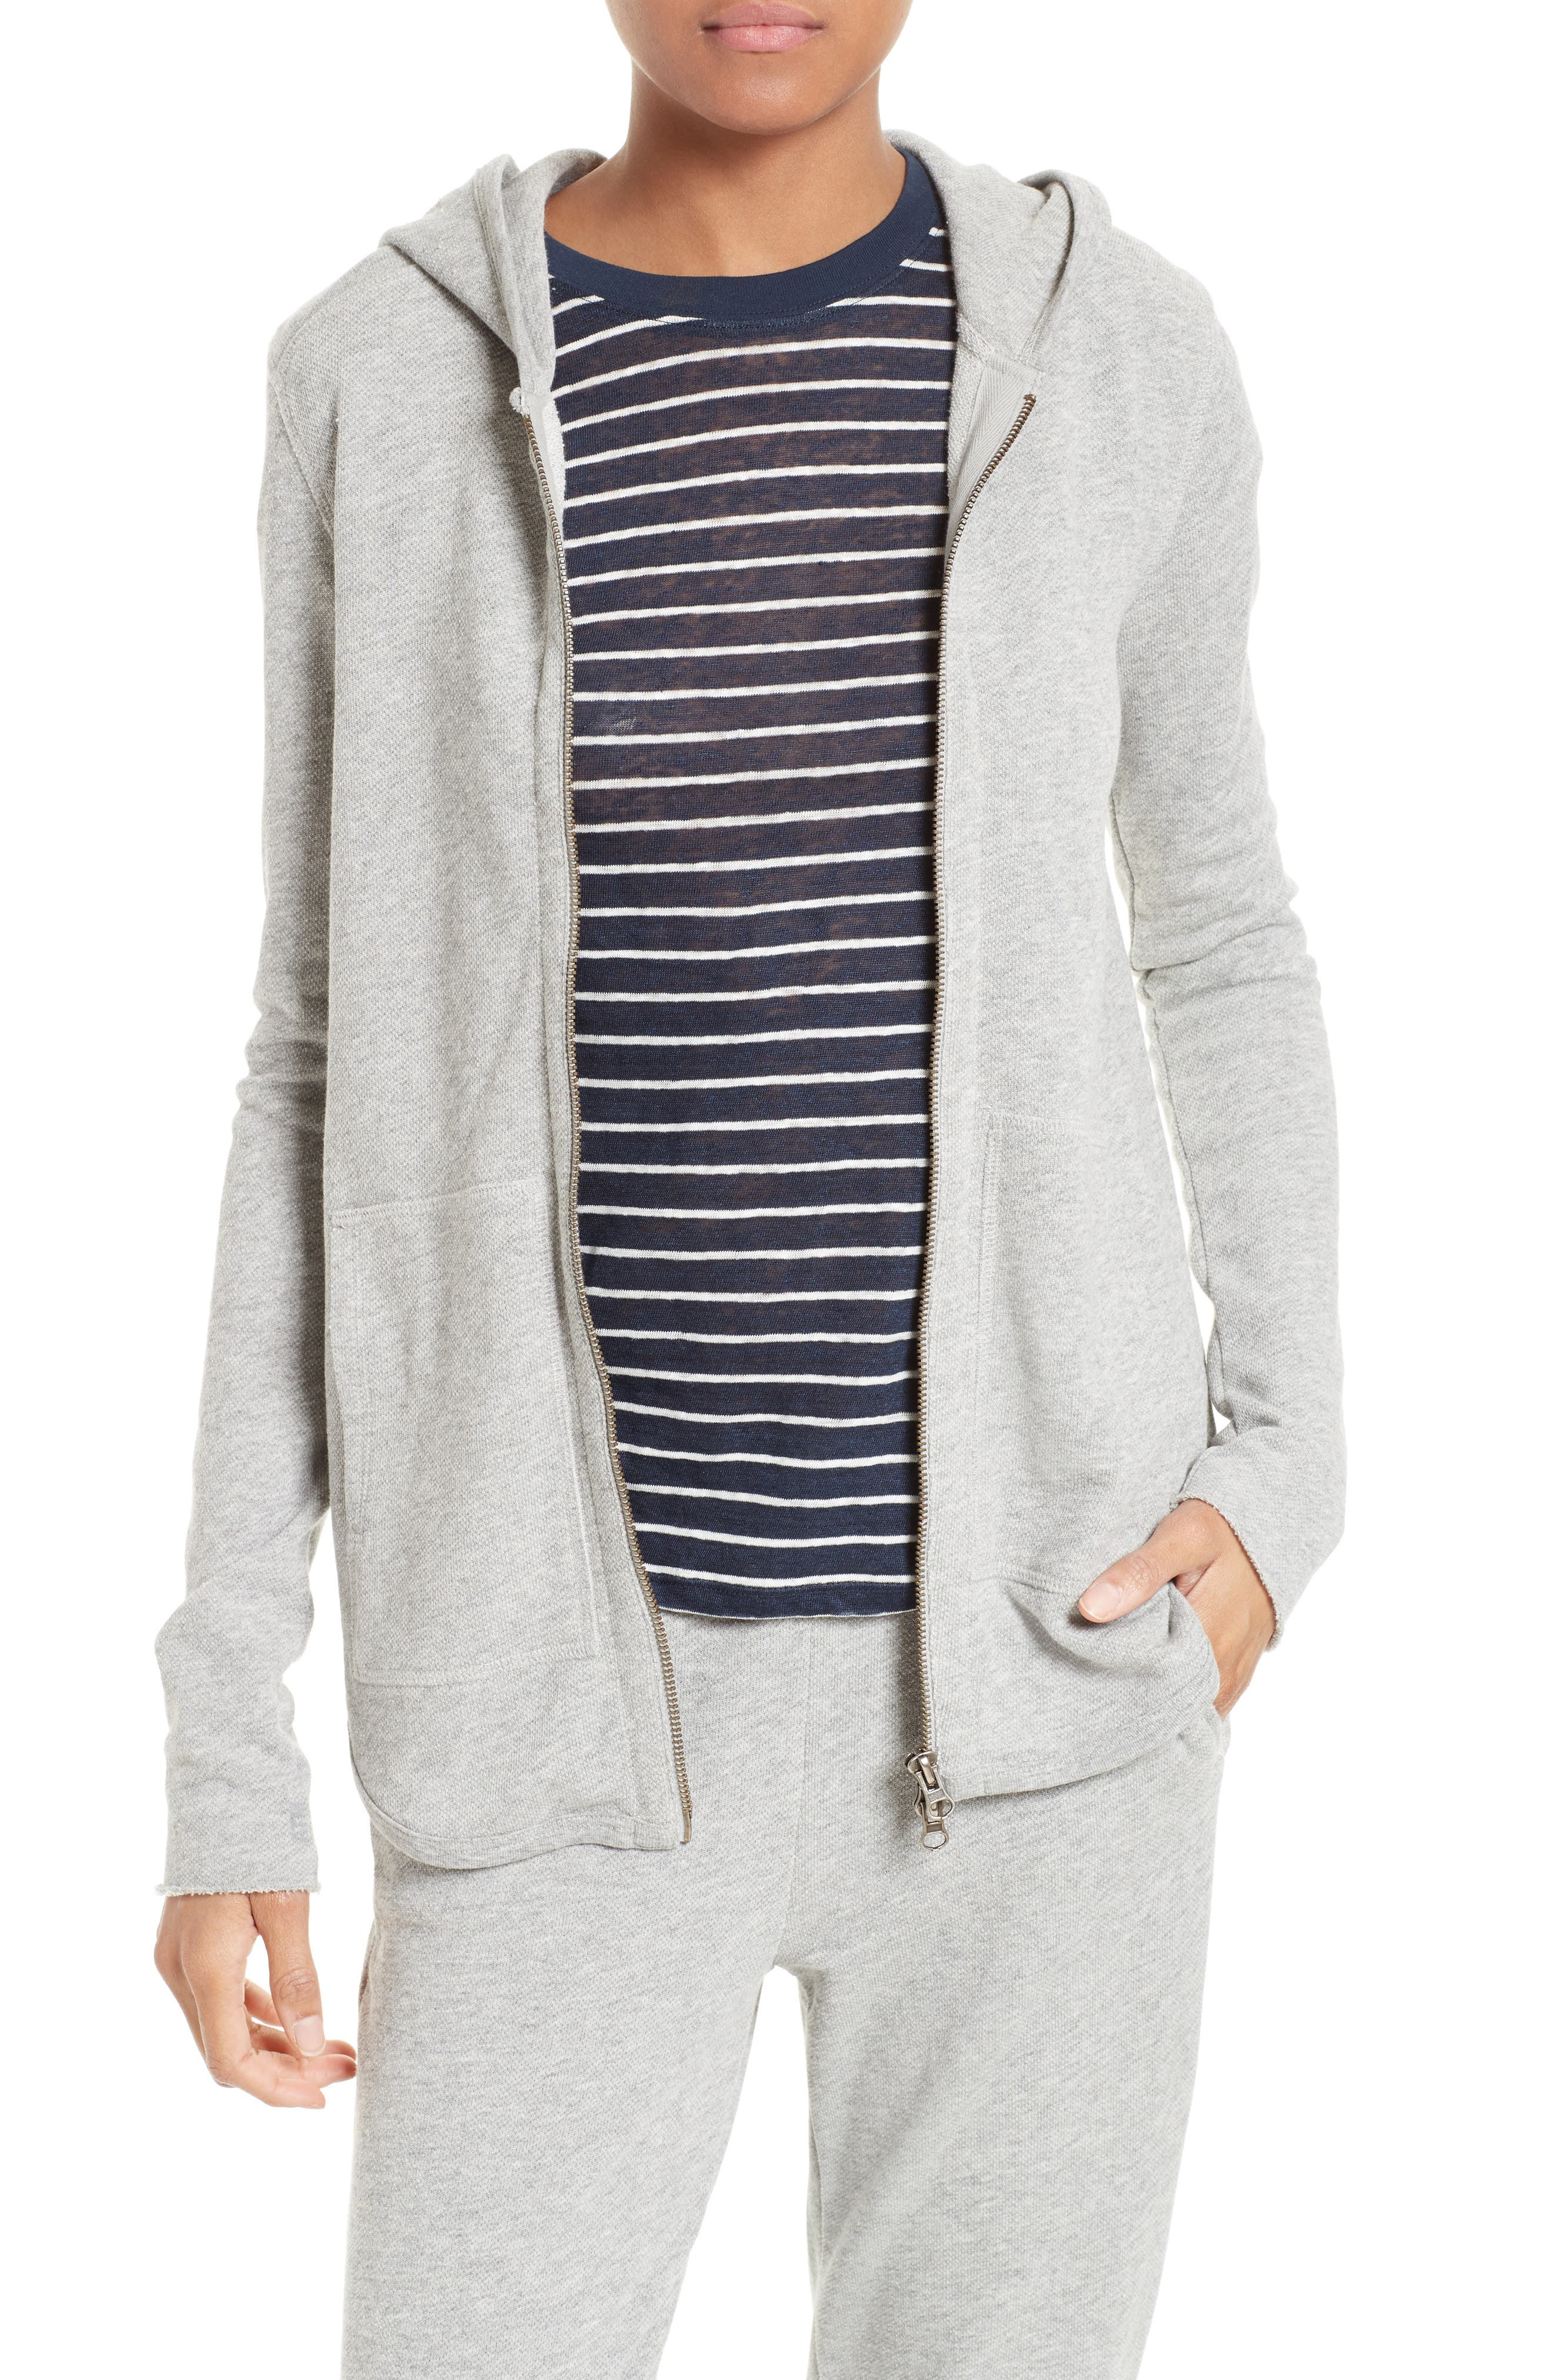 French Terry Zip Hoodie,                             Main thumbnail 1, color,                             Heather Grey